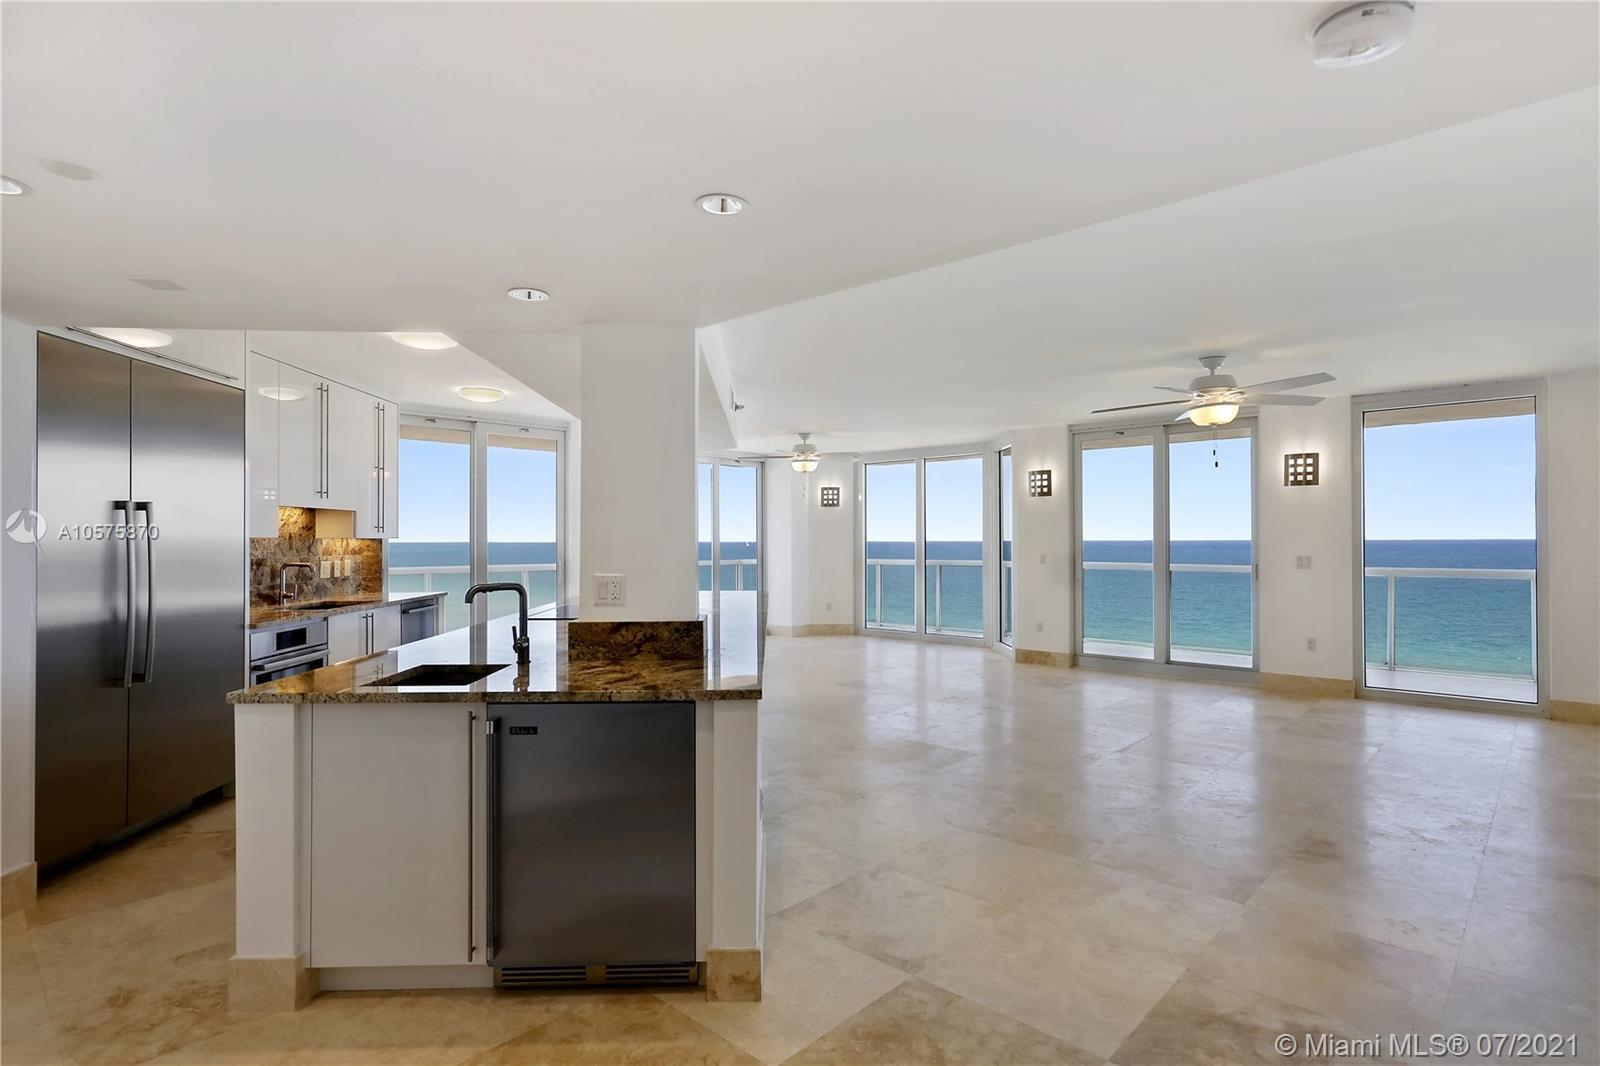 Magnificent 2BR/2.5BA split floor plan with panoramic, direct ocean views! Every inch of this 1,609S